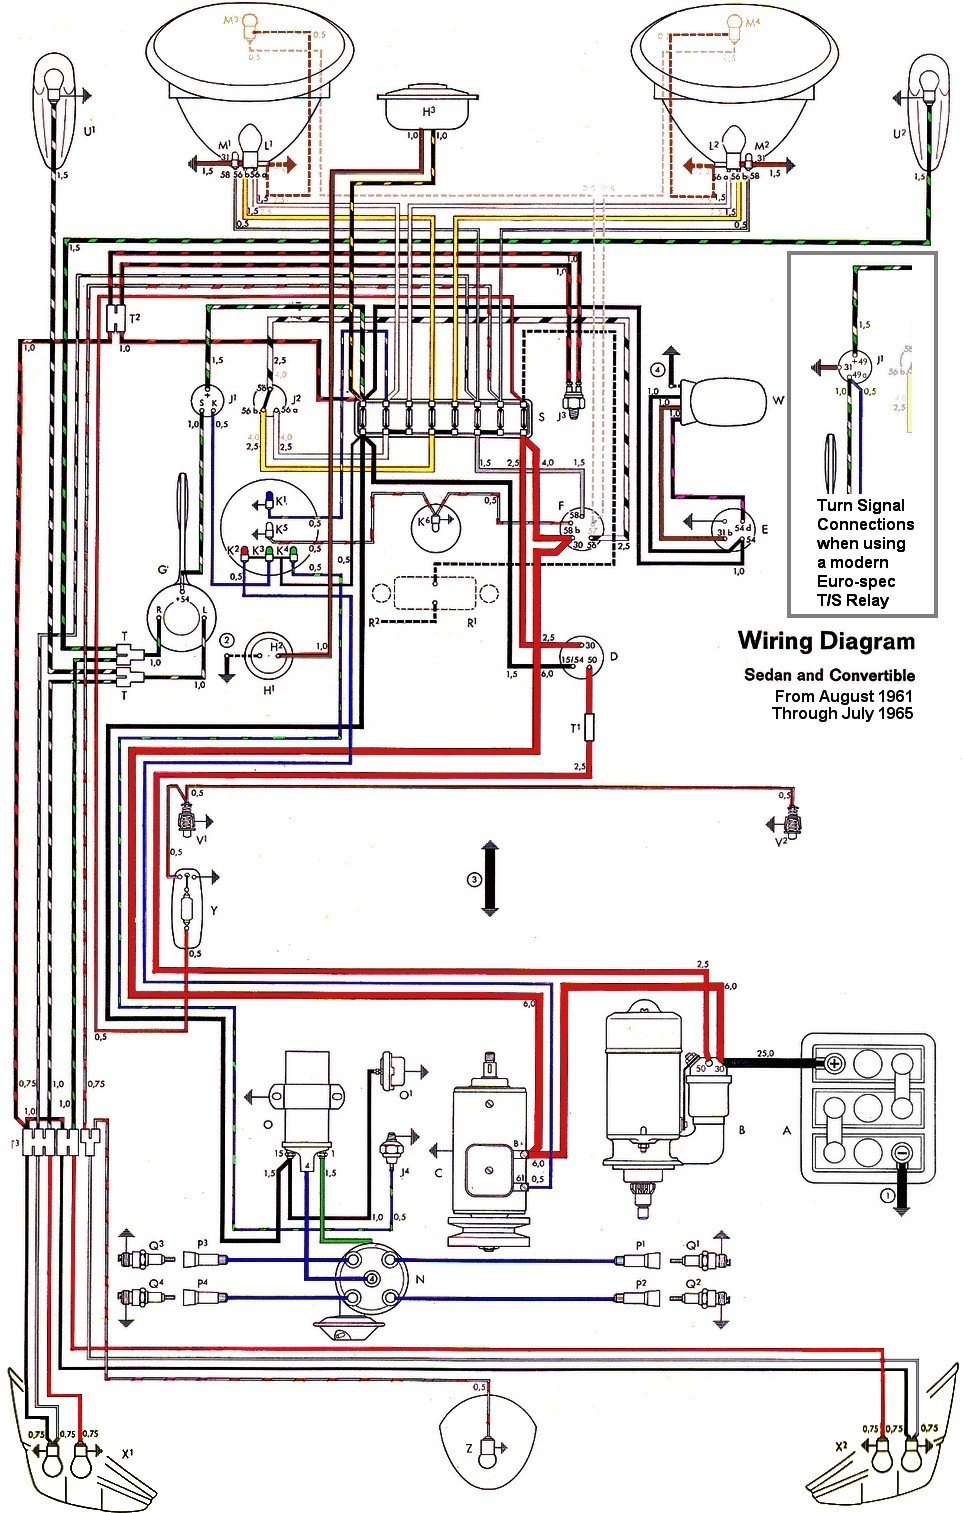 thesamba com type 1 wiring diagrams rh thesamba com 1973 beetle wiring diagram 1973 beetle wiring diagram